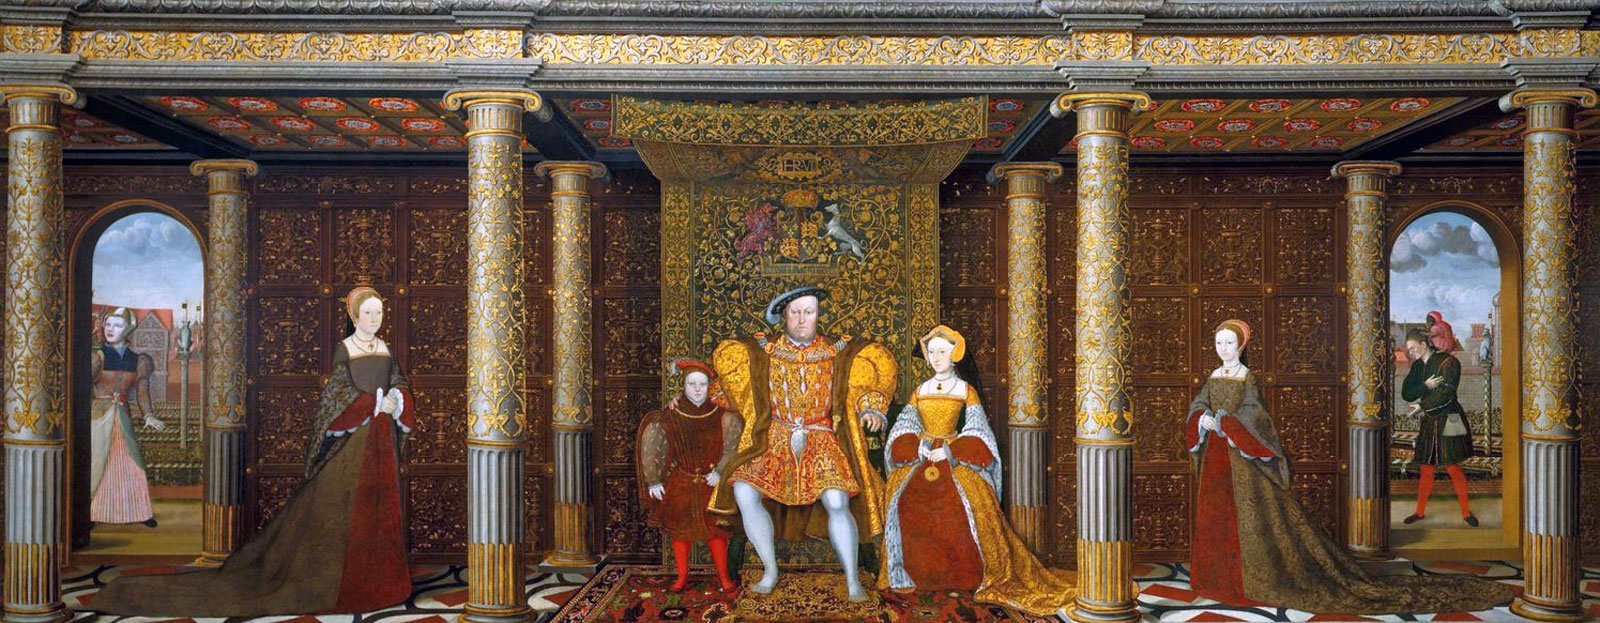 henry-viii-and-family